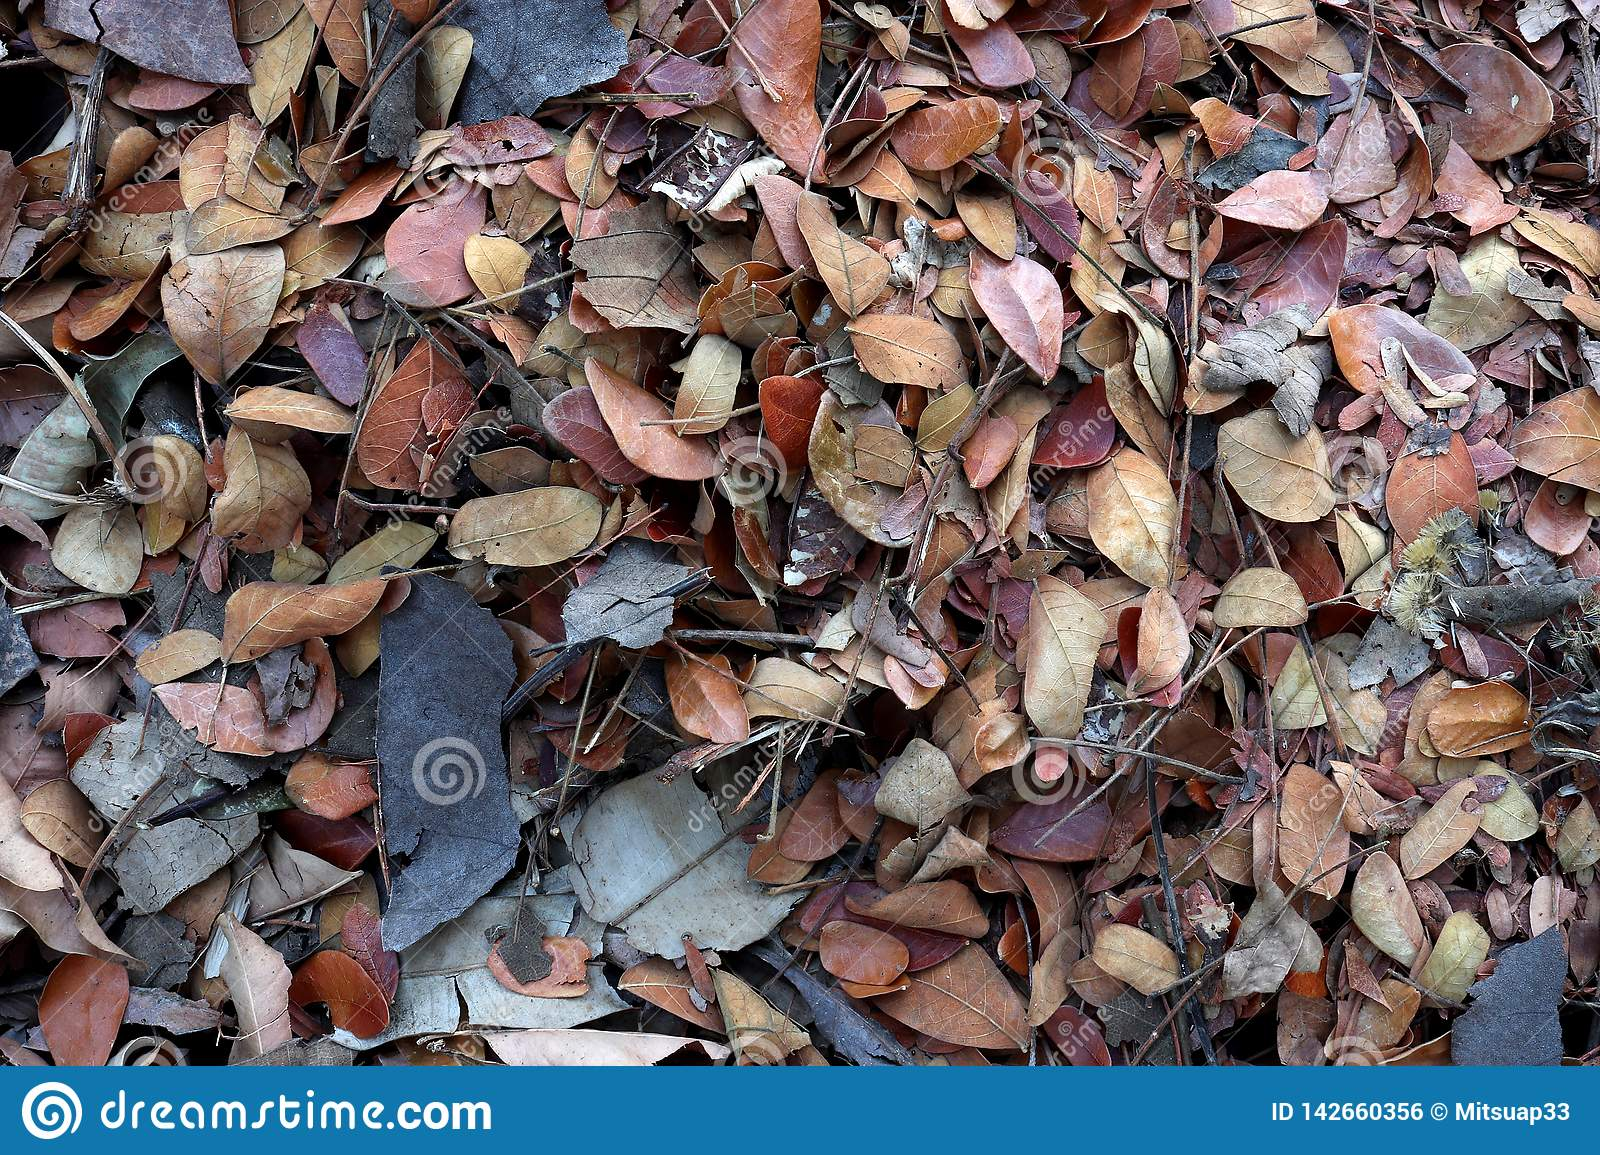 Fallen teak leaf on ground, Composting fall leaves, Biomass and mulch, organic material